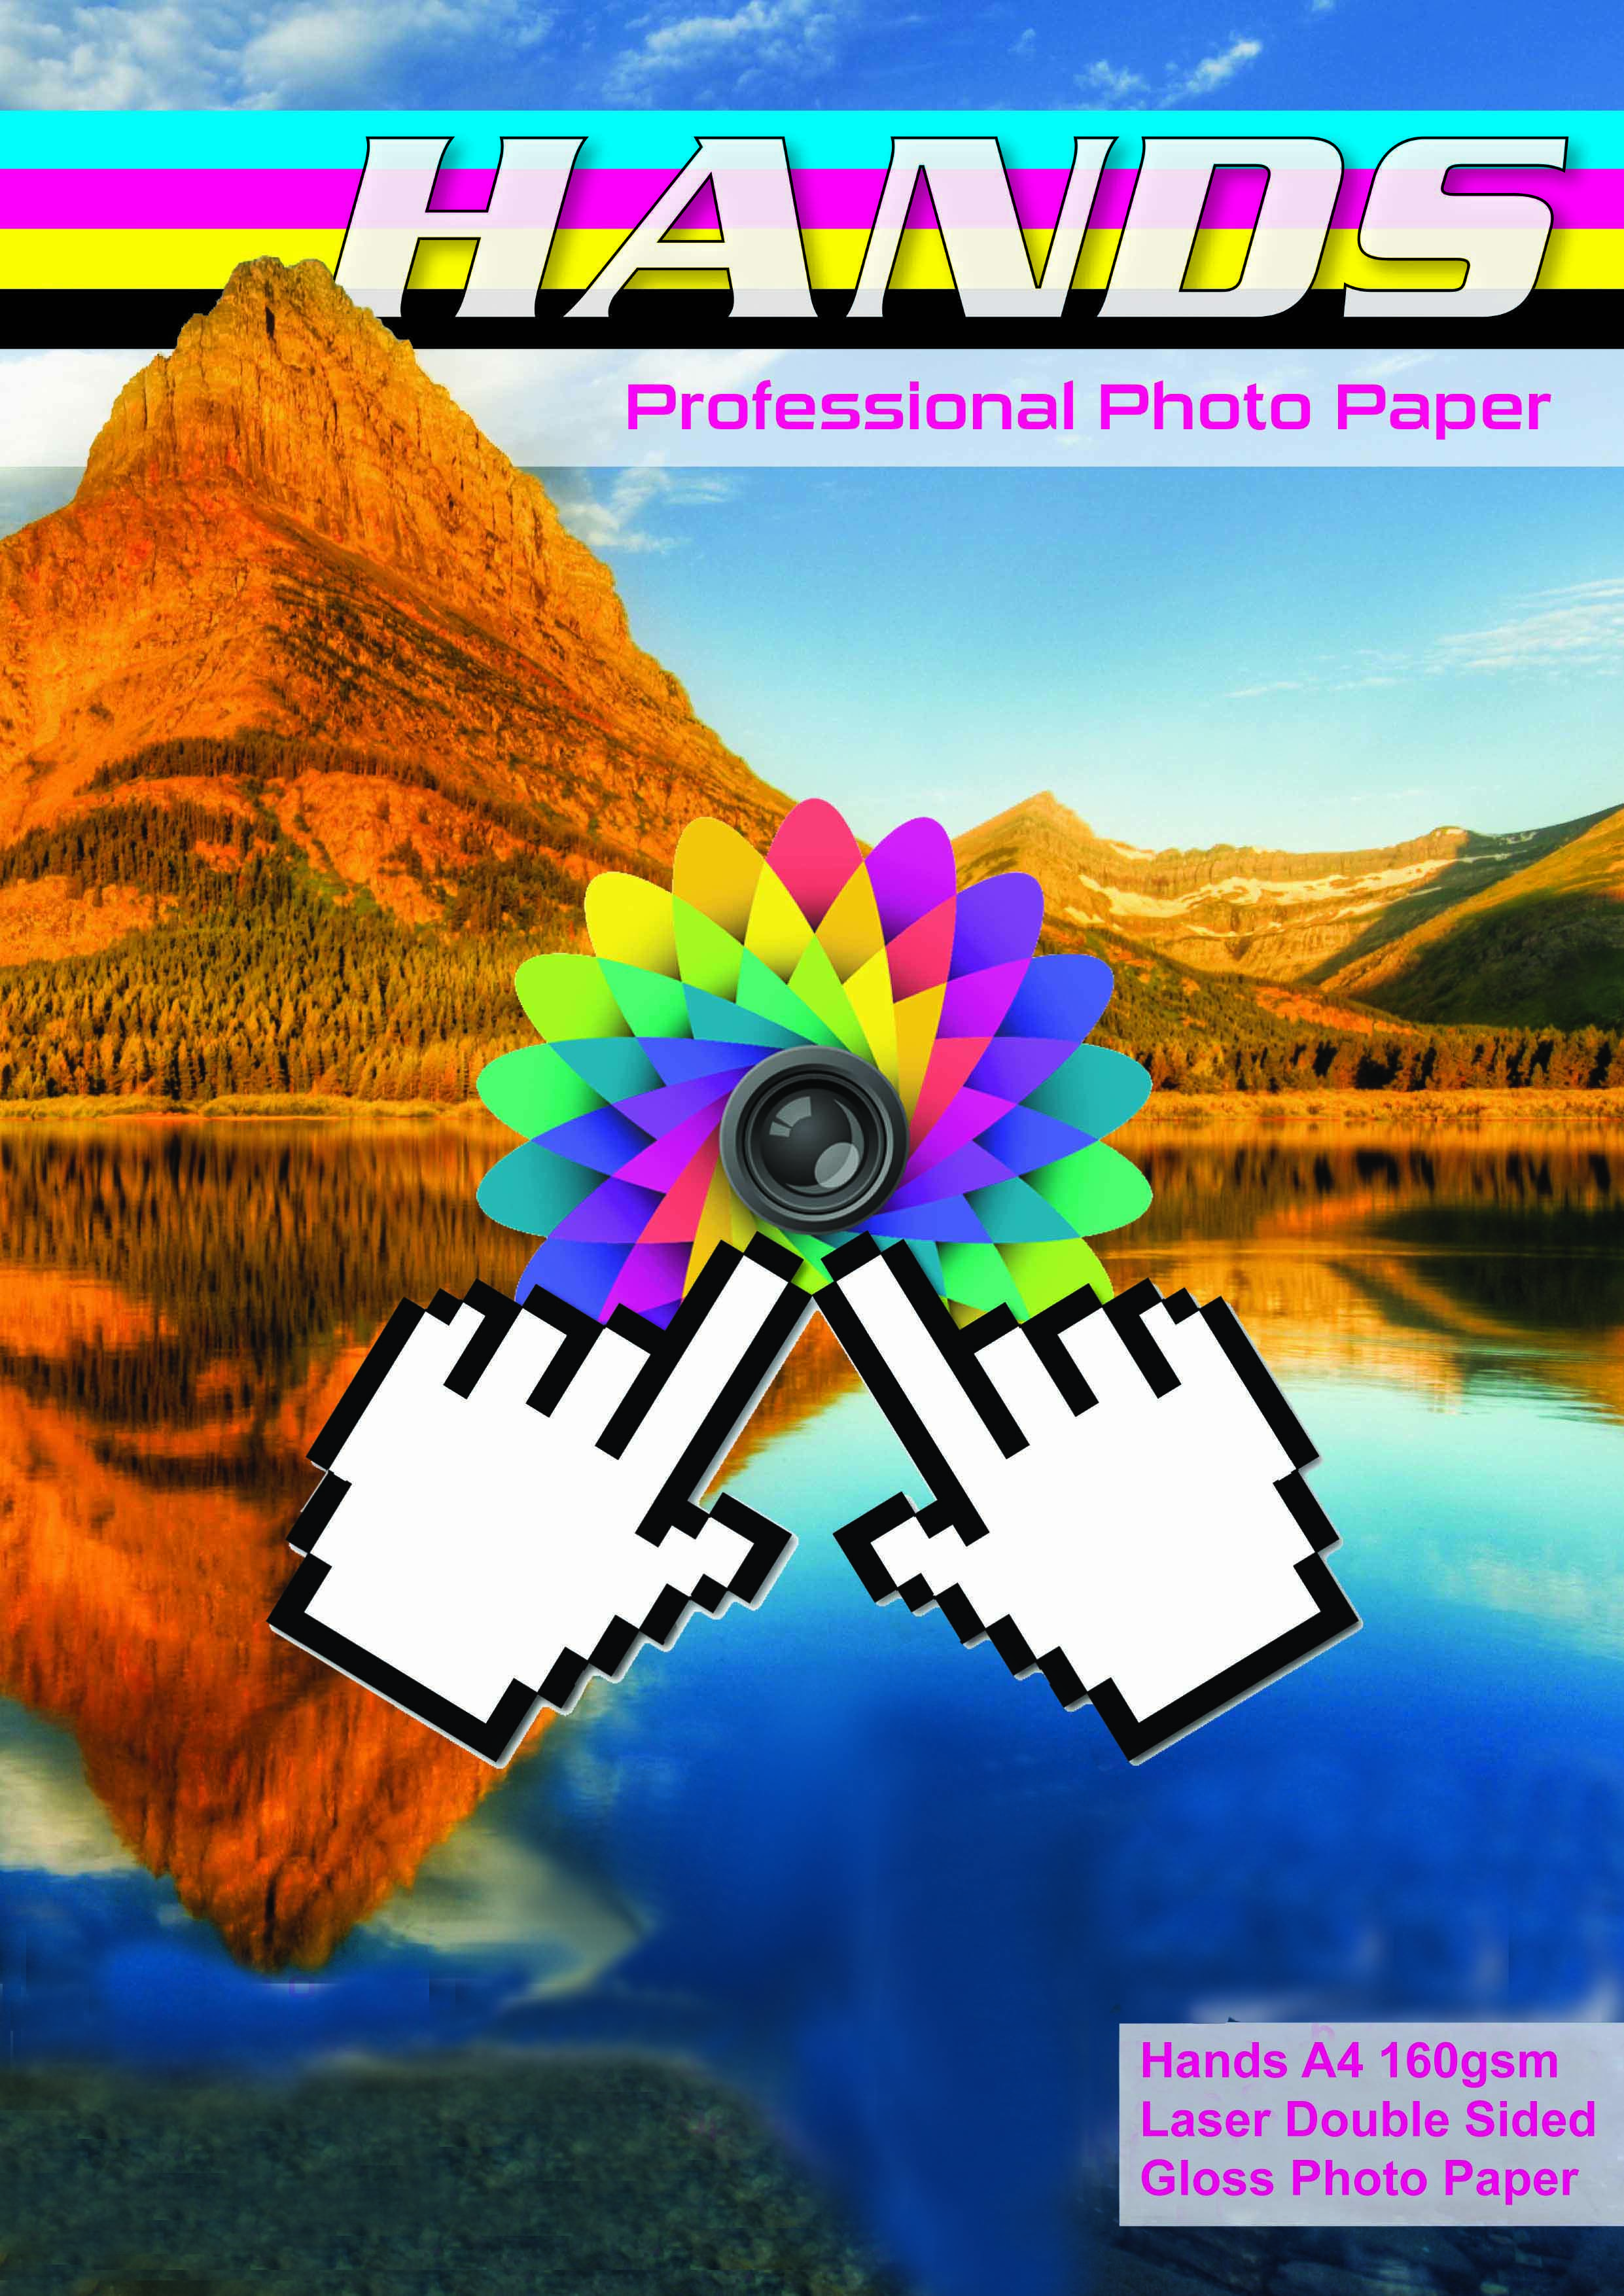 20 Sheets A4 160gsm Hands Double Sided Gloss Photo Paper